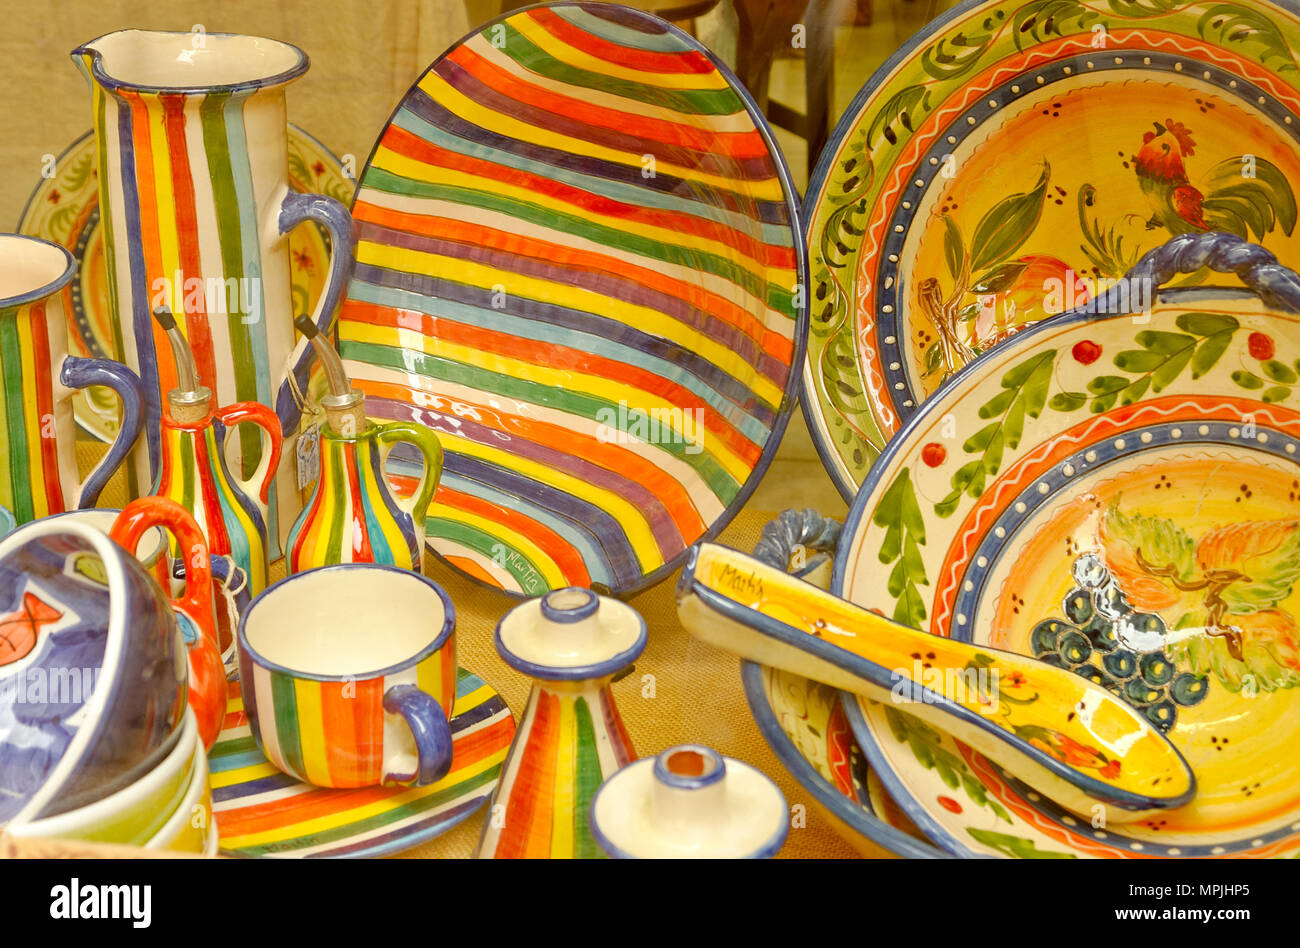 pottery Spain - Stock Image